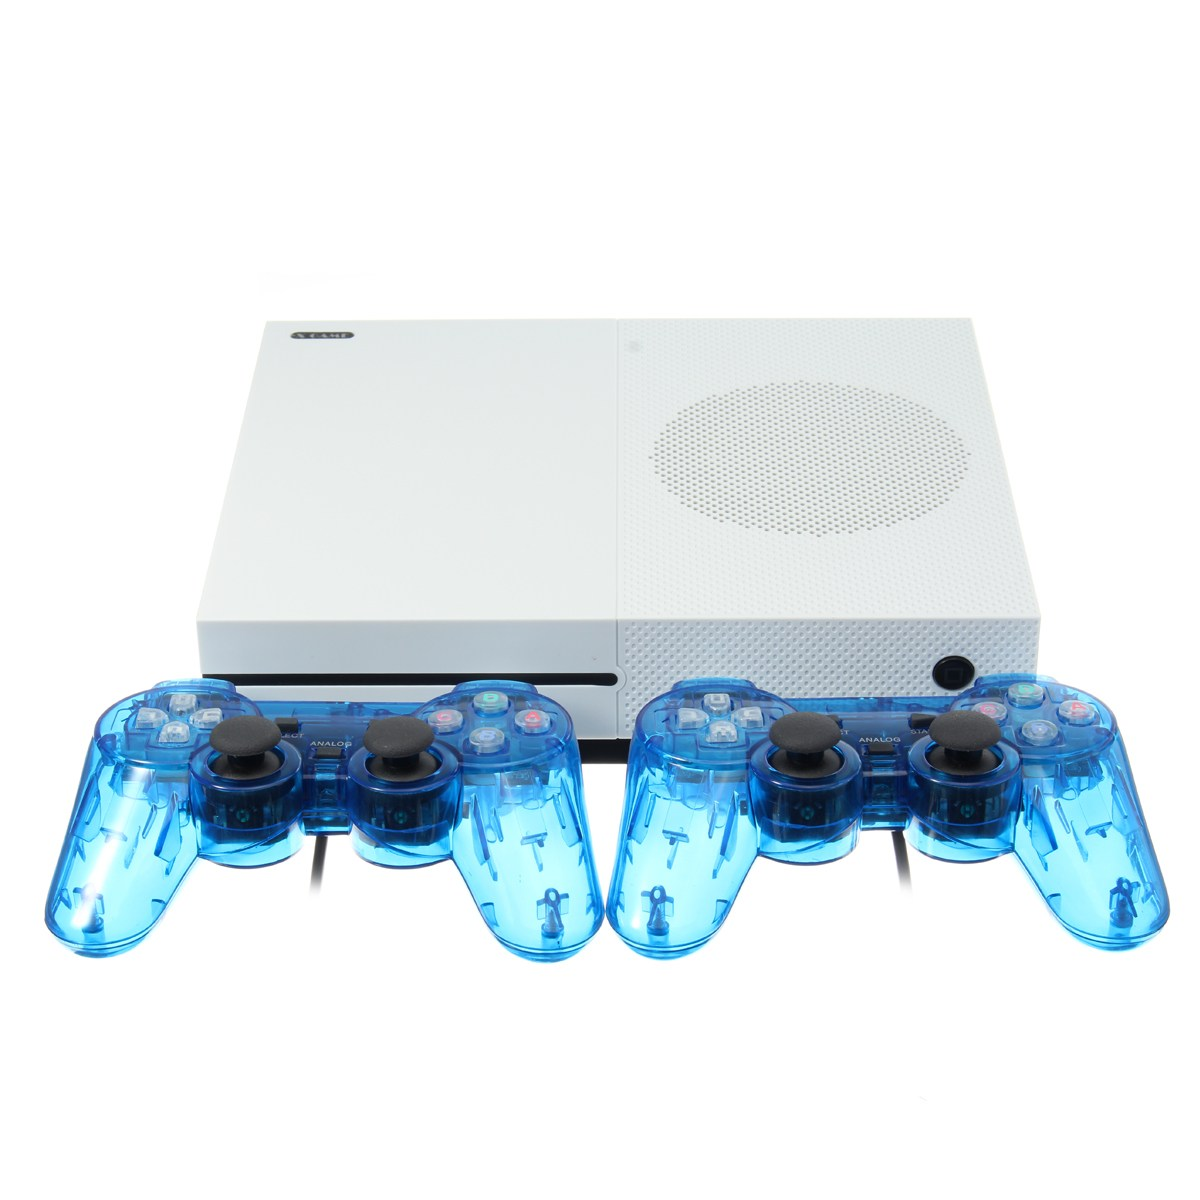 600 Built-In Games HD TV Video Game Arcade Console Home 4GB Support HDMI USB TV Out With 2pcs Joystick Gamepad nintendo gba video game cartridge console card metroid zero mission eng fra deu esp ita language version